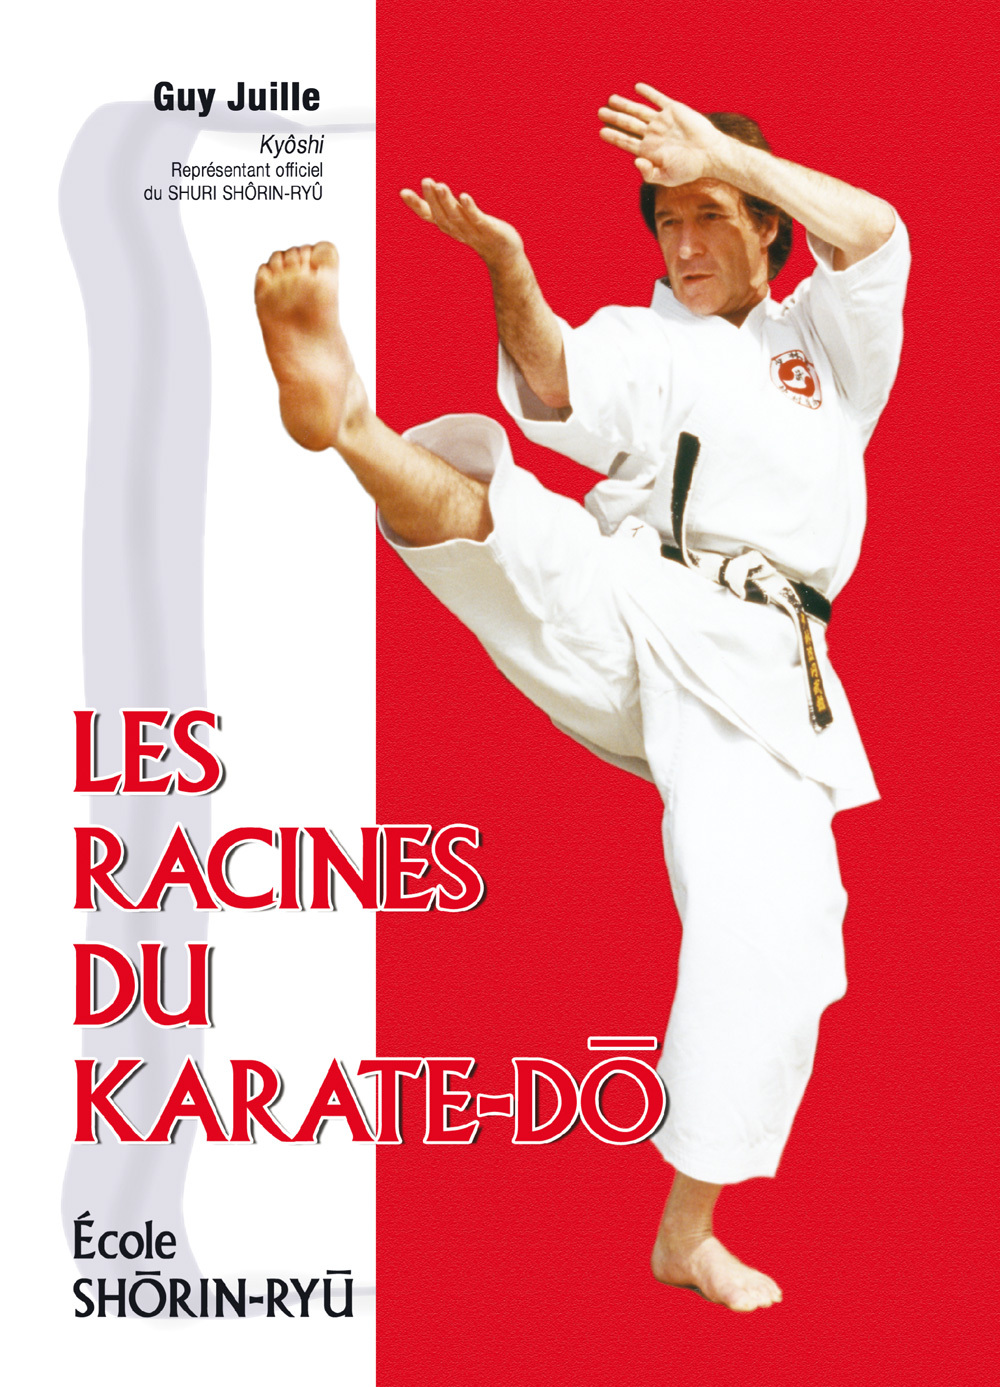 RACINES DU KARATE-DO (LES)